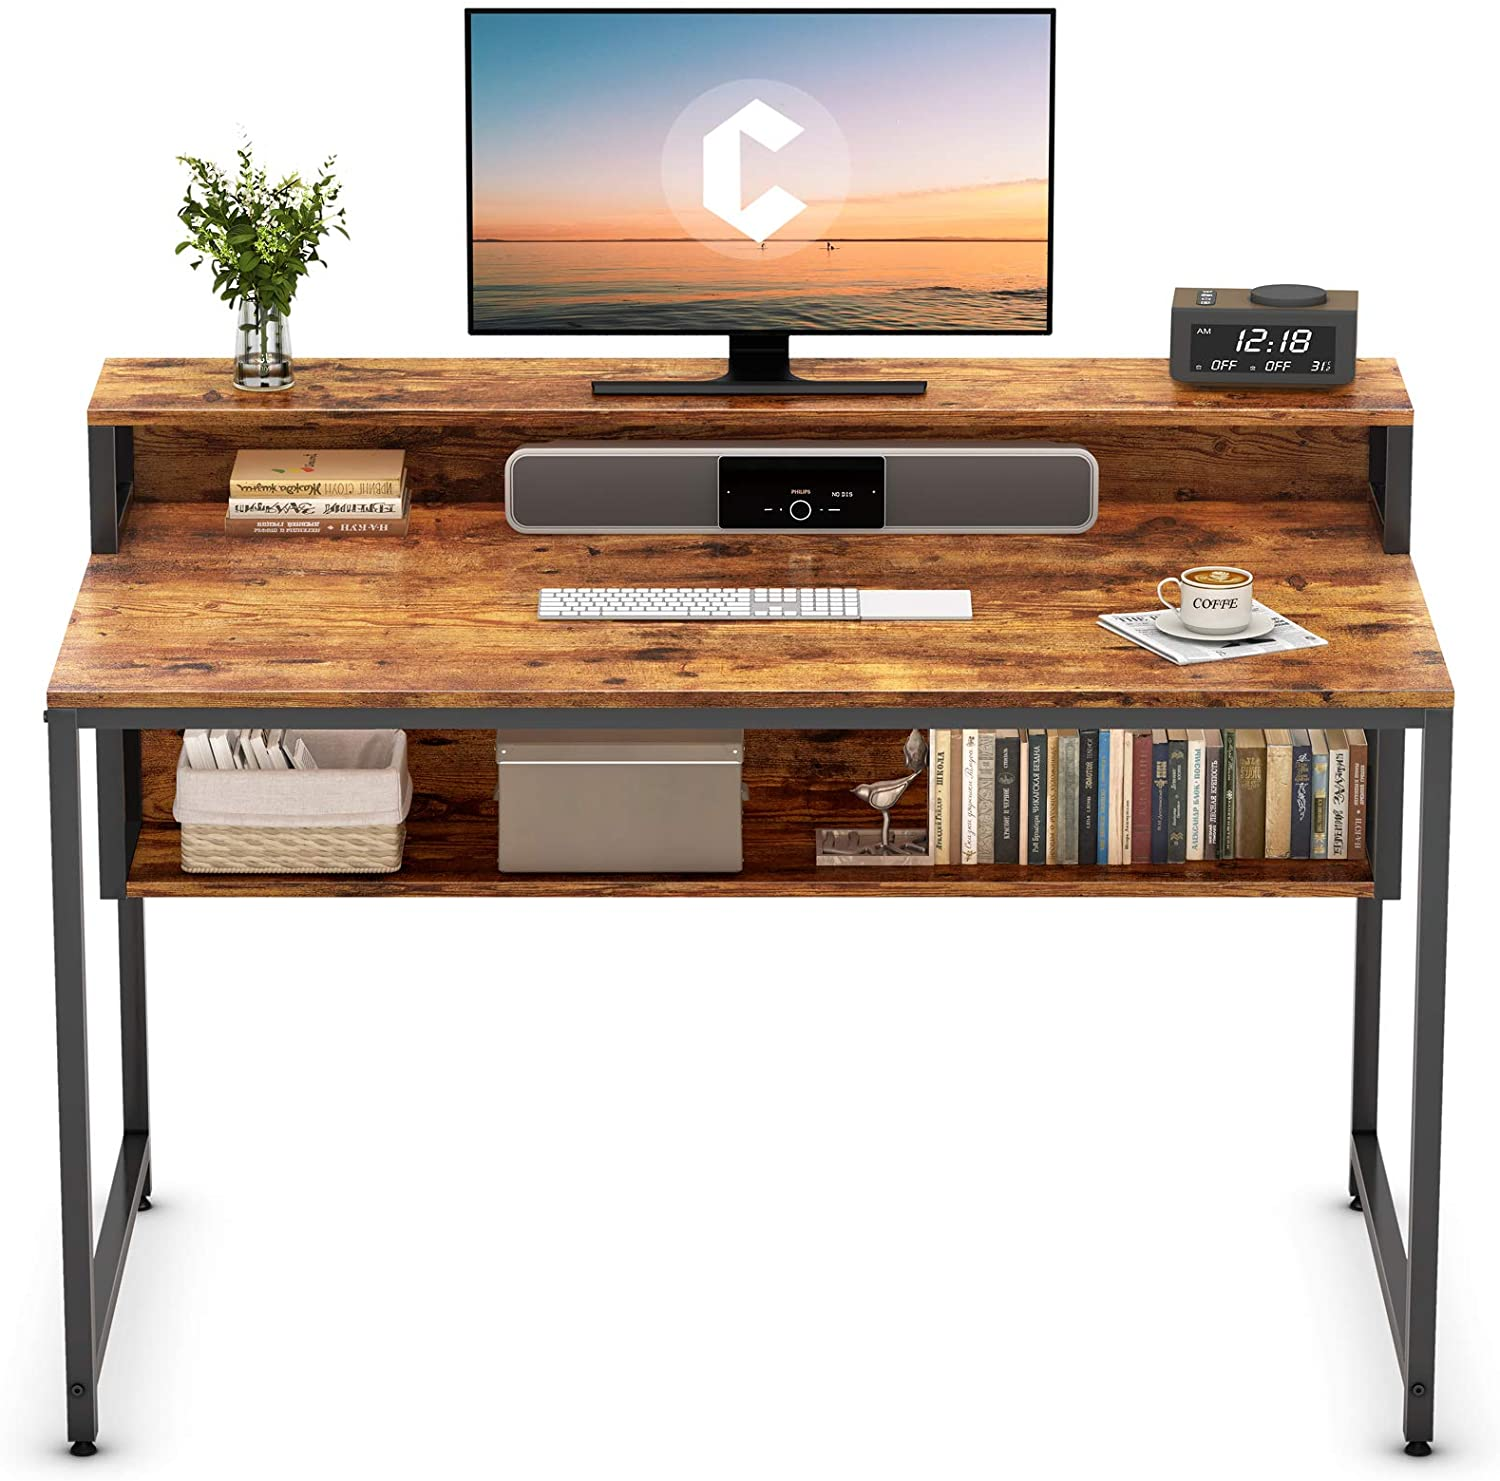 "Cubiker Computer Home Office Desk, 47"" Small Desk Table with Storage Shelf and Bookshelf, Study Writing Table Modern Simple Style Space Saving Design, Rustic"